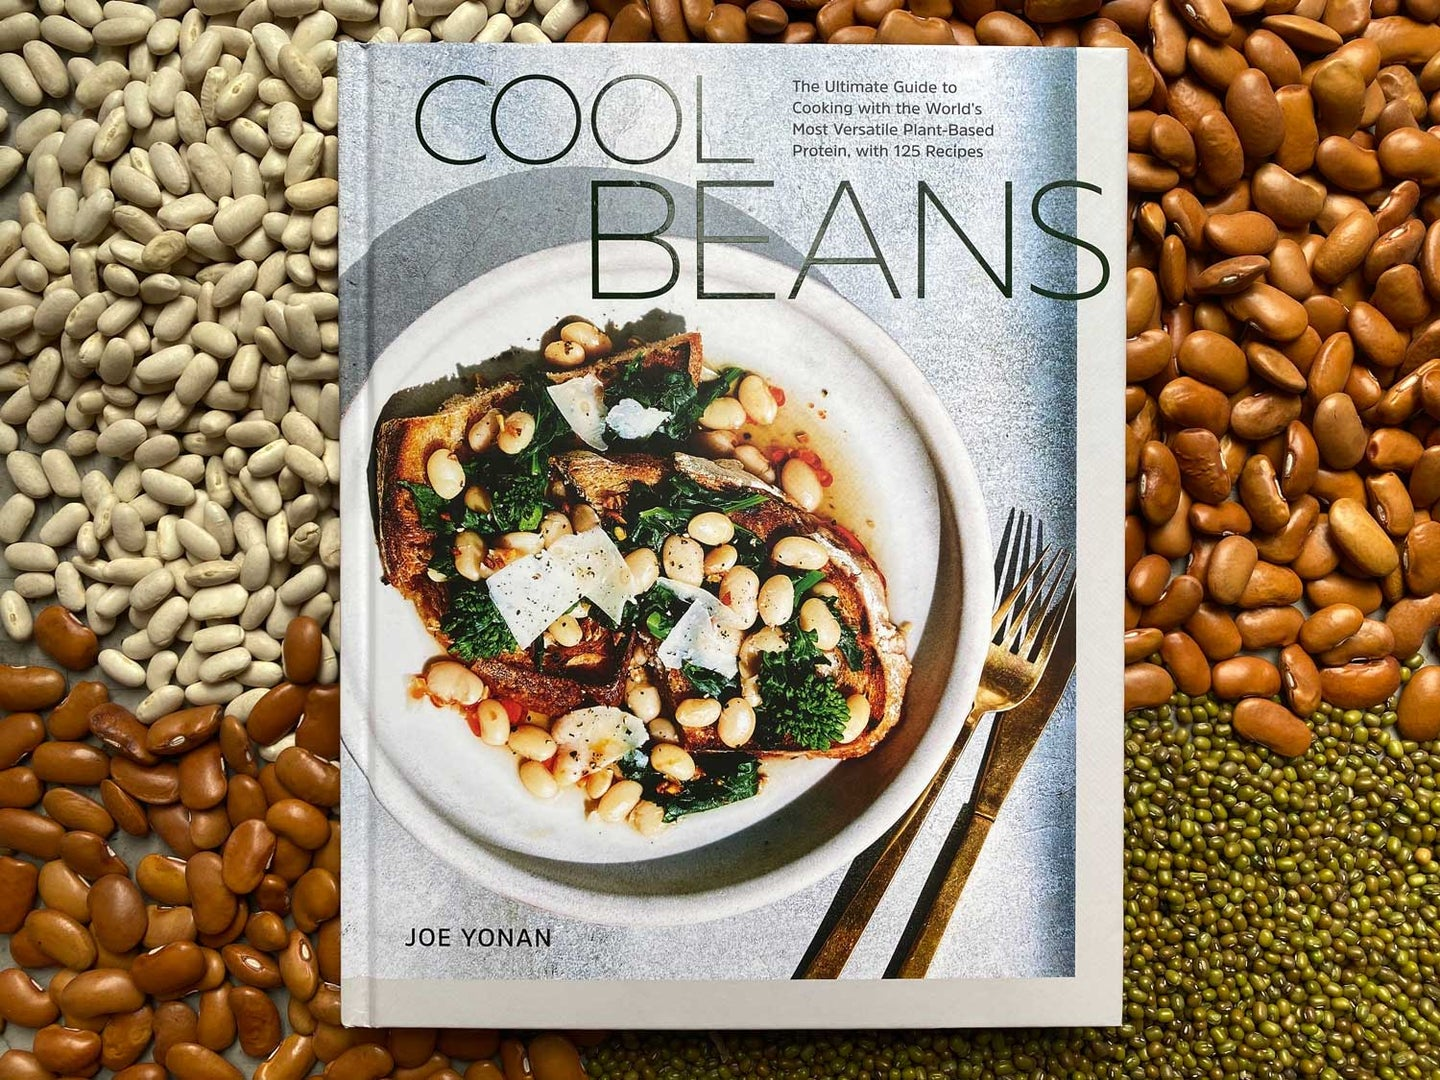 Cool Beans: The Ultimate Guide to Cooking with the World's Most Versatile Plant-Based Protein, by Joe Yonan